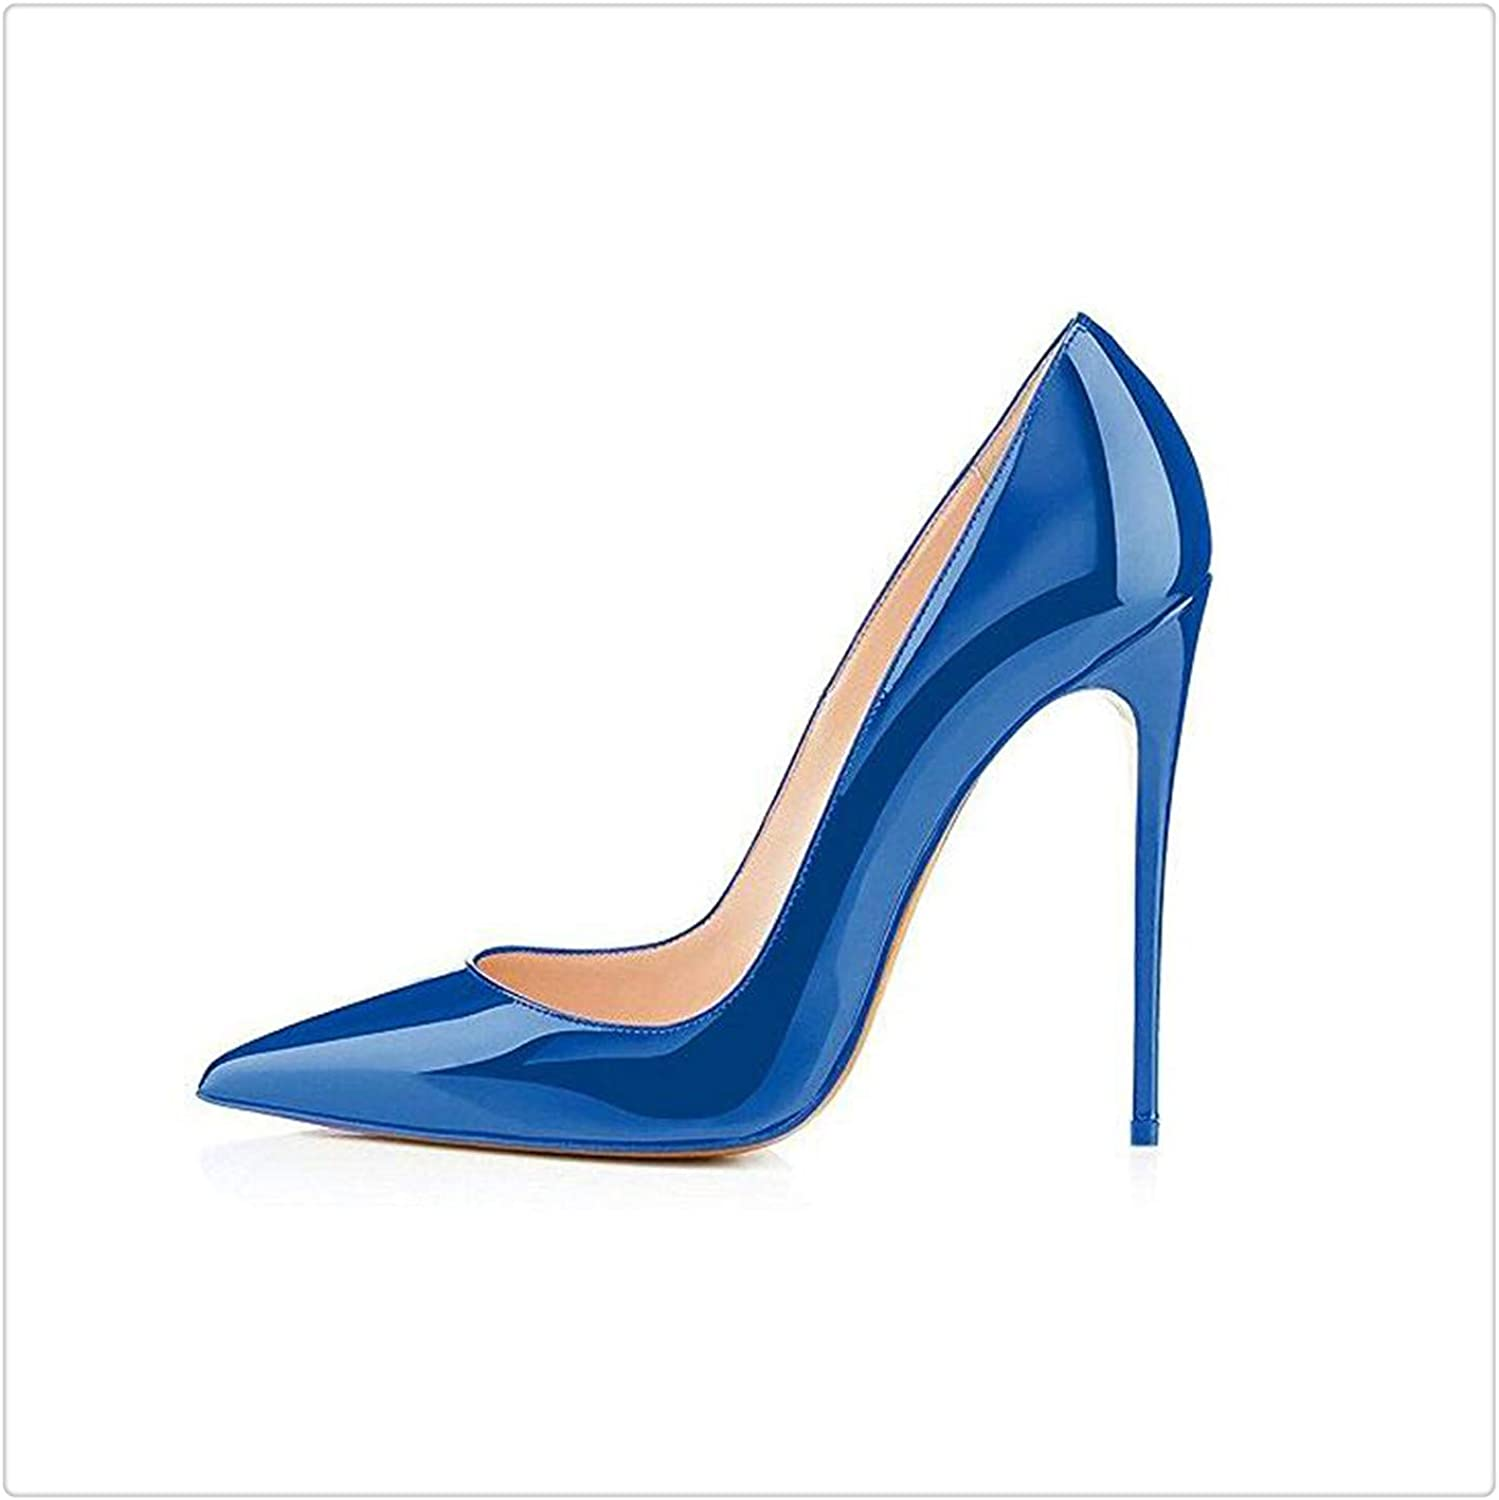 High Heels shoes Stiletto High Heel Women Pumps Sexy Navy Royal bluee Pointed Toe